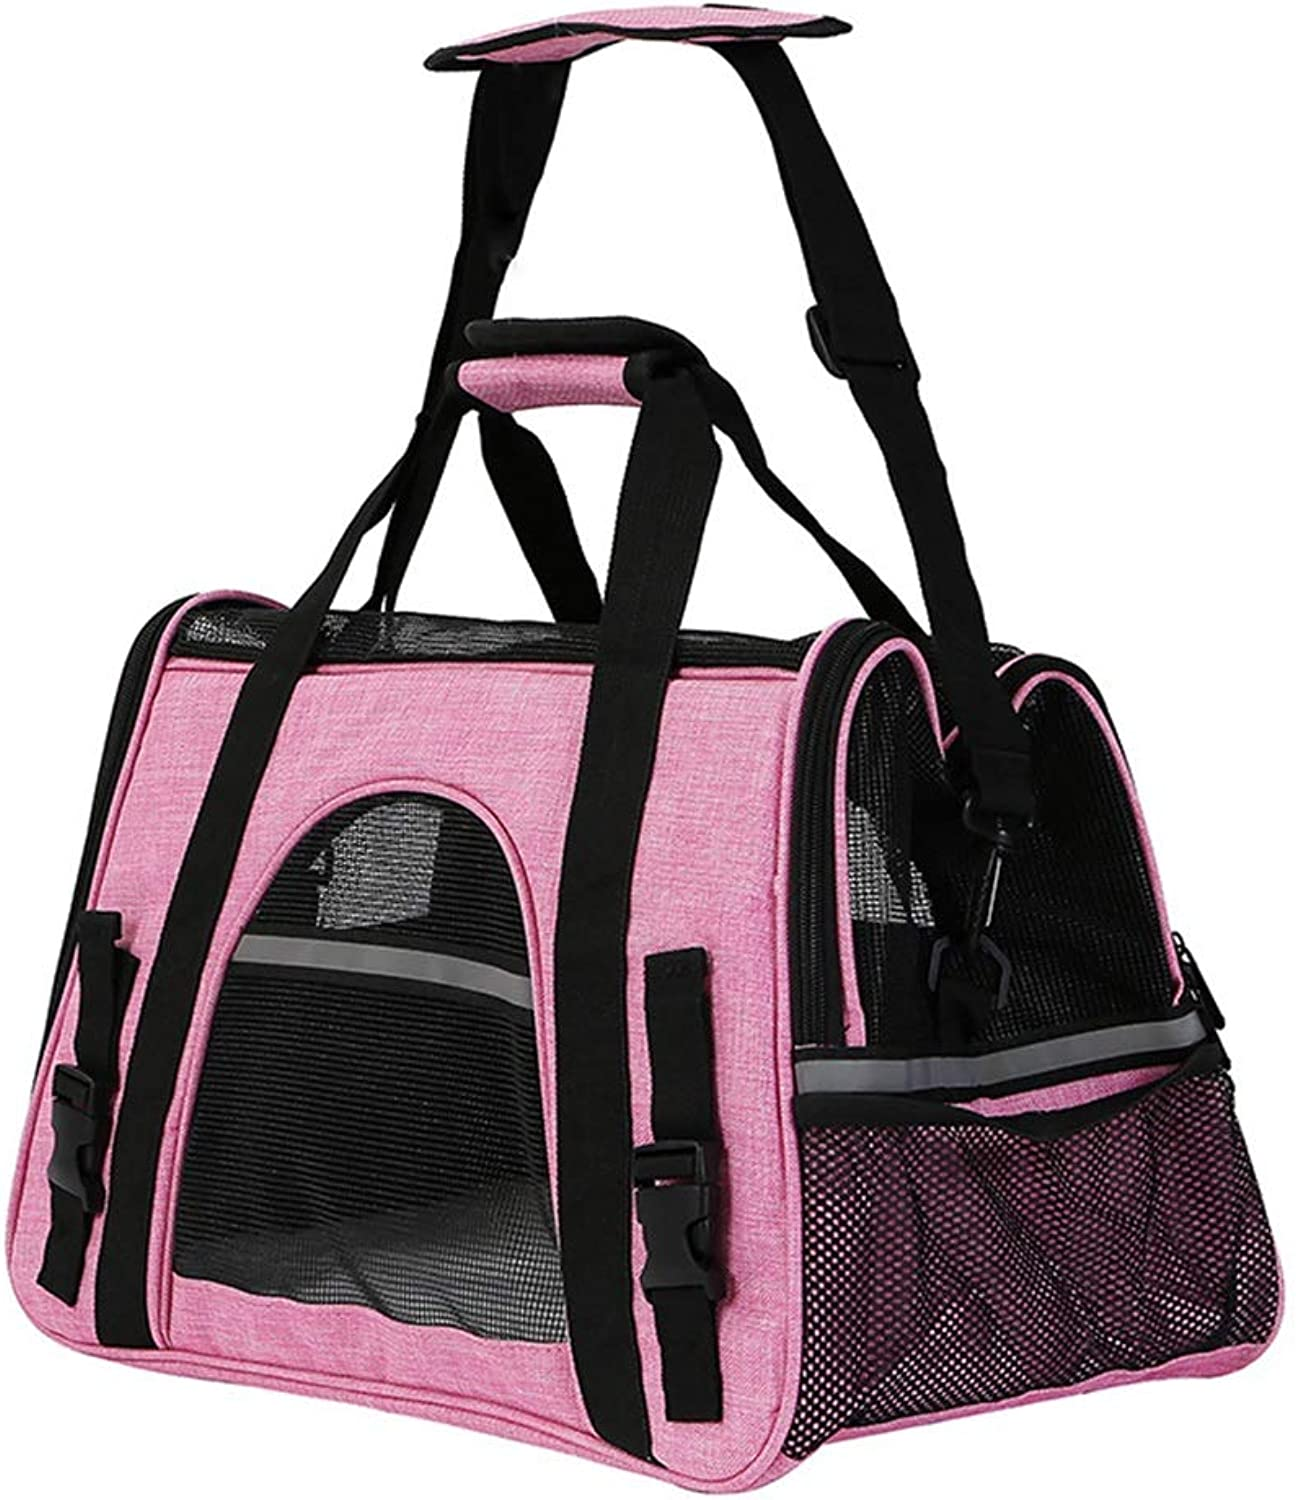 Dog Carrier Pet Travel B Ag Comfortable Portable Folding Pet Bag Airline Approved Puppy Cat 17.7x9.8x11 Inches